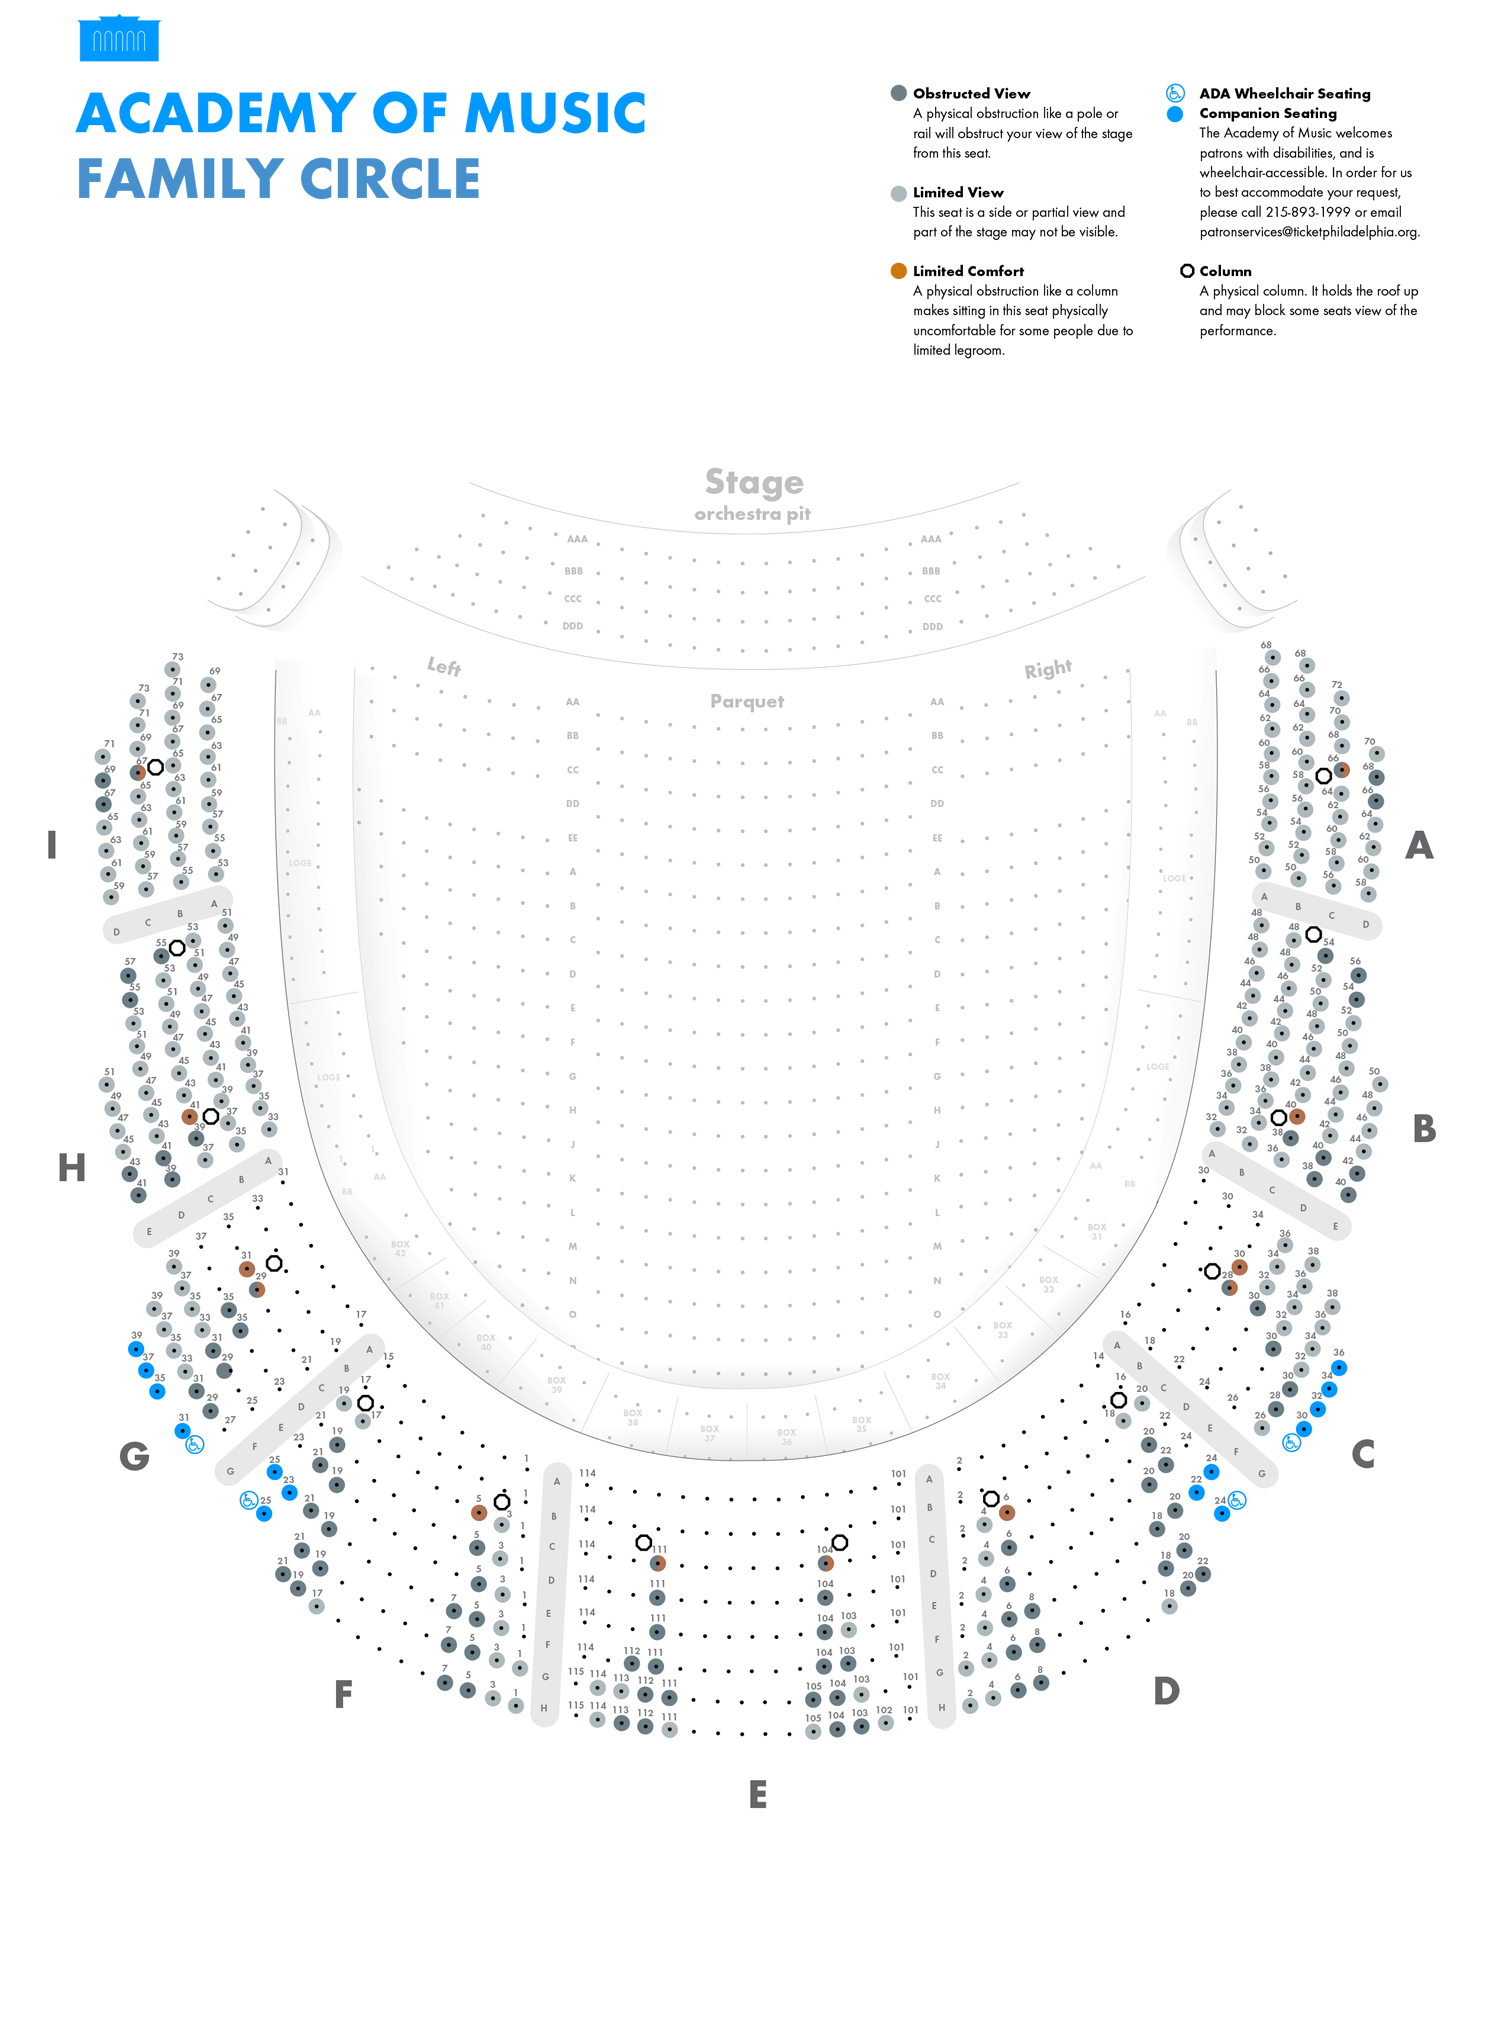 Academy of Music - Family Circle - Seating Chart